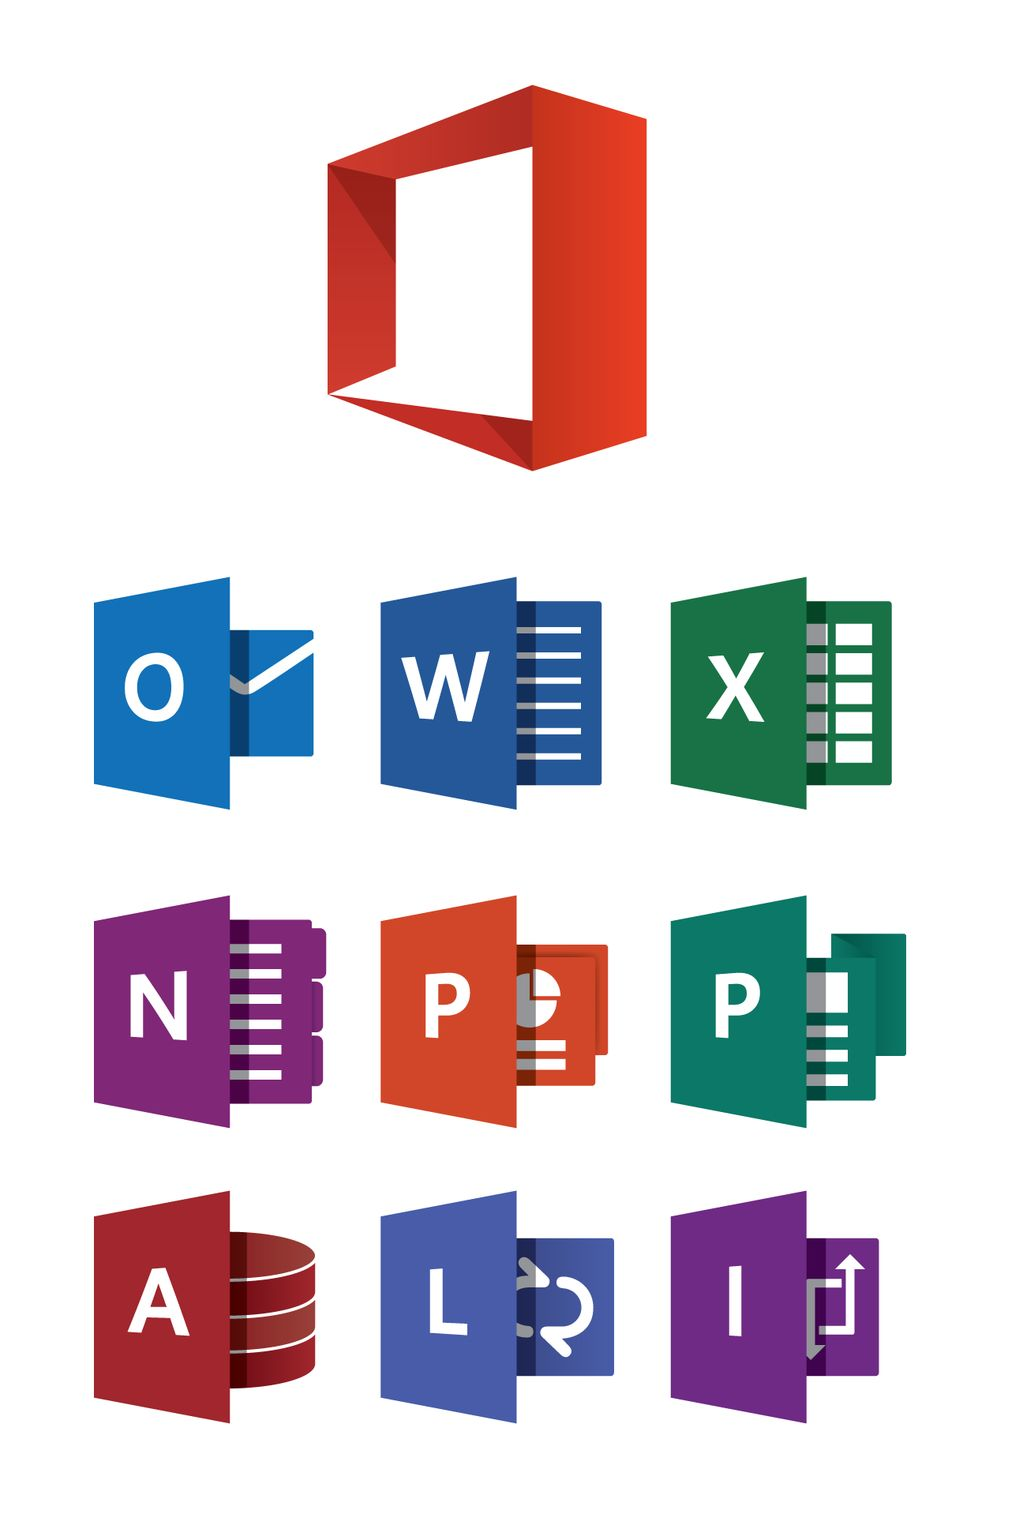 11 Microsoft Office 2013 Logos Vector Images Microsoft Office Icons 2013 Vector Microsoft